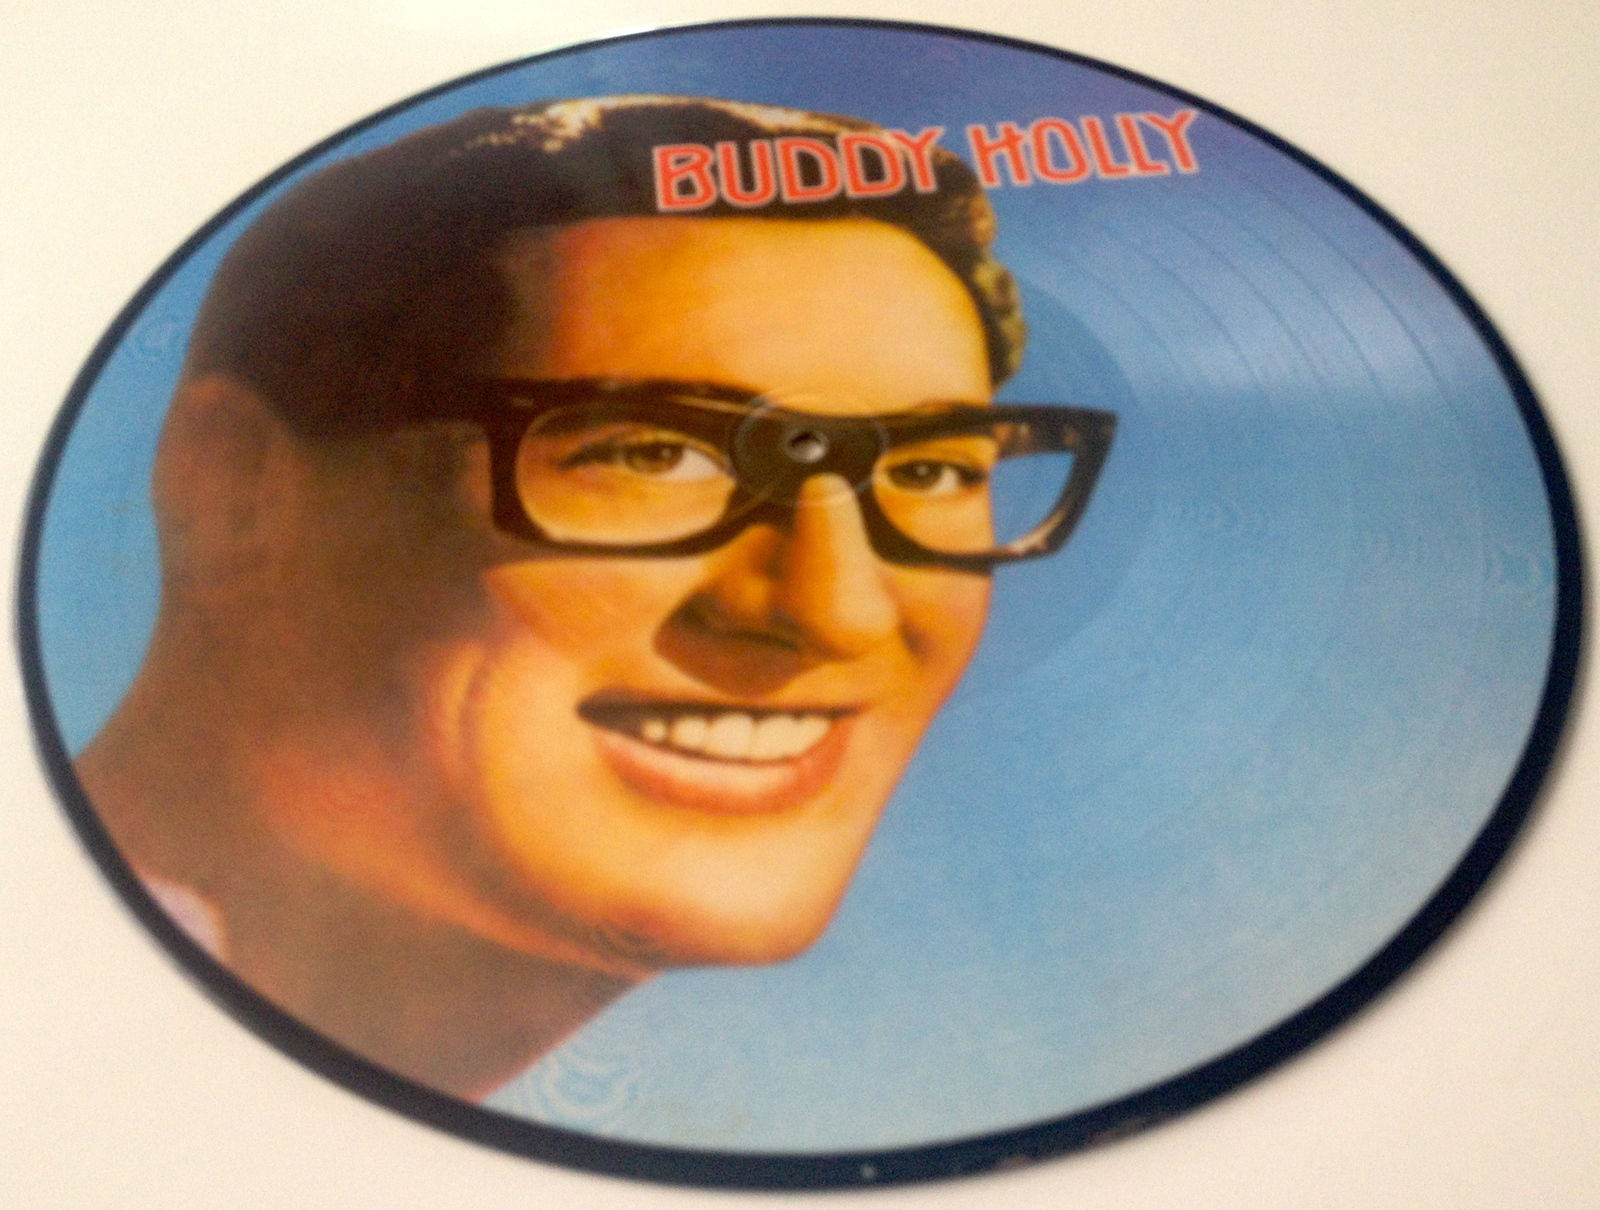 Buddy Holly Picture Disc LP Vinyl Record Album All Round Trading AR-30006 1982